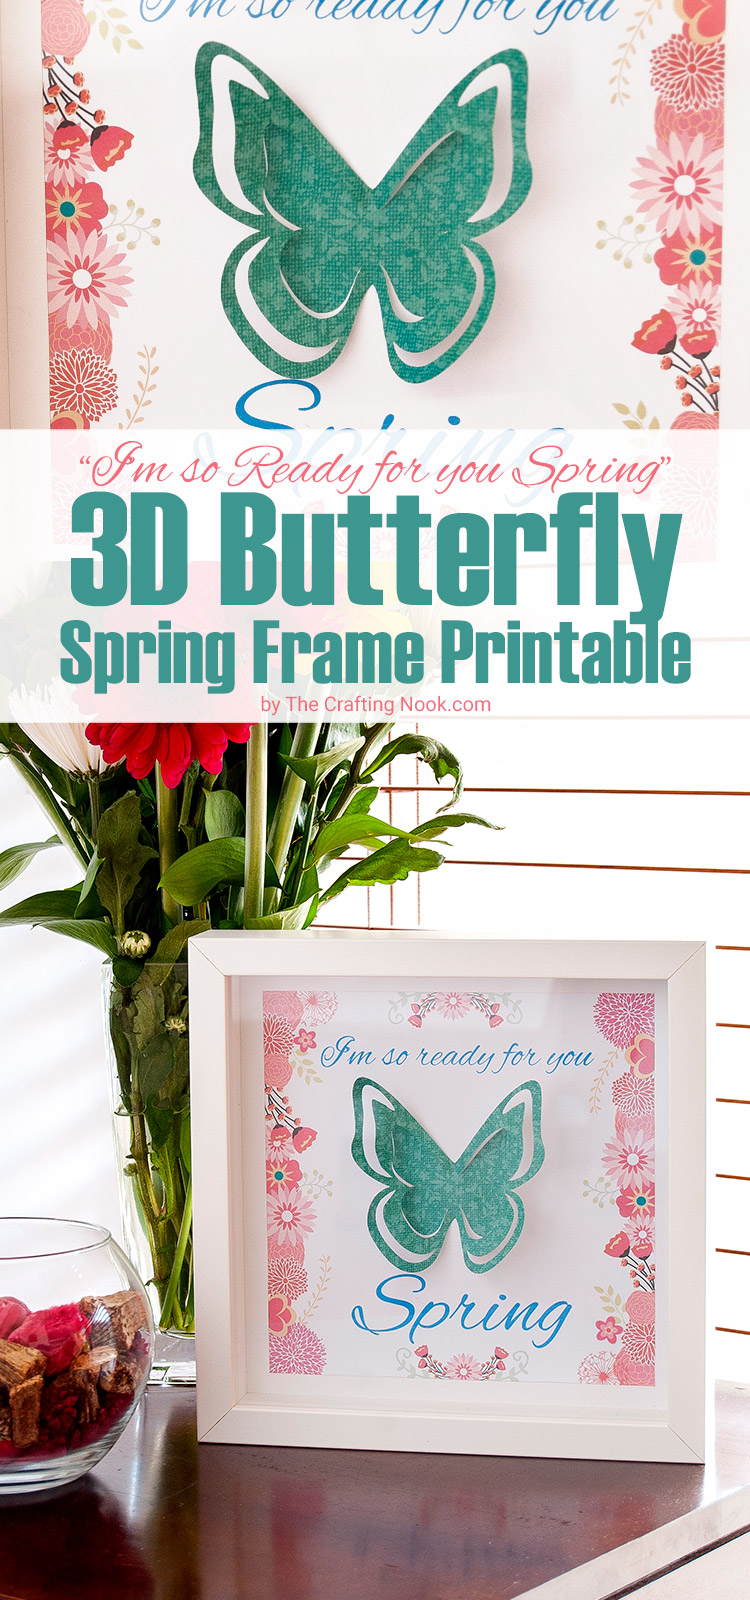 3D Butterfly Spring Frame Art + Free Printable